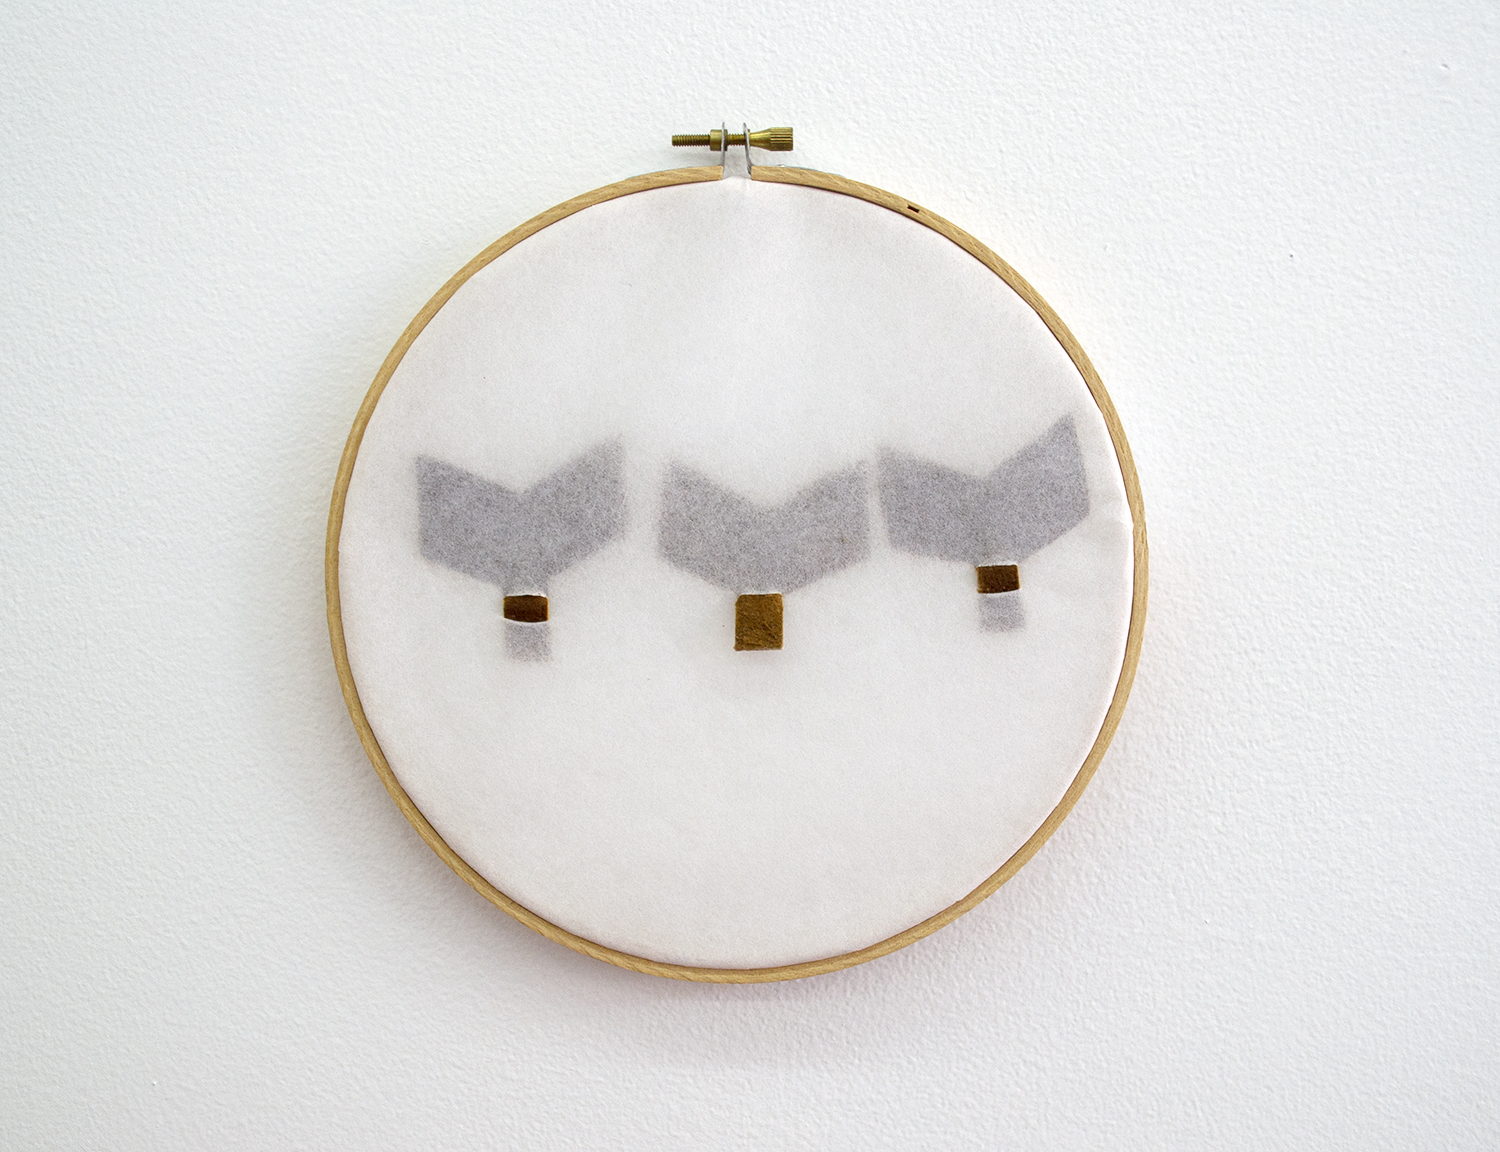 "Untitled (Hoops with Fur Scraps) (6), 2015, Maureen Gruben (Inuvialuk), white interface, moose hide, sewing hoop, 7.5"" diameter, POR"